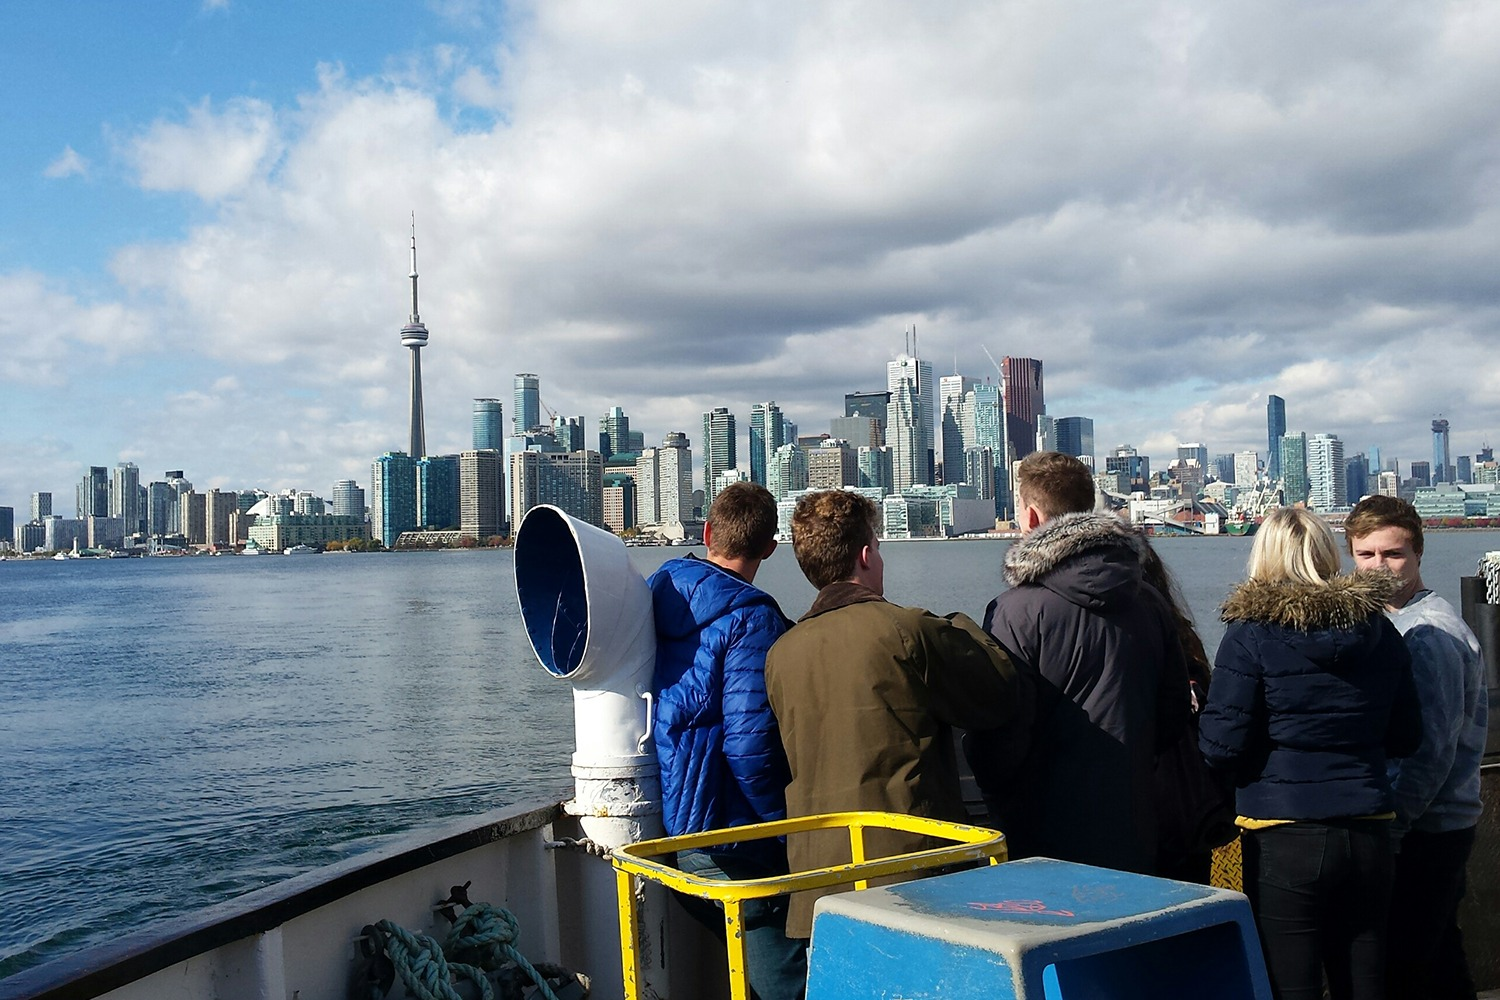 Ferries bring residents back and forth between downtown Toronto and the Islands. (Photo credit Linda Rosenbaum)